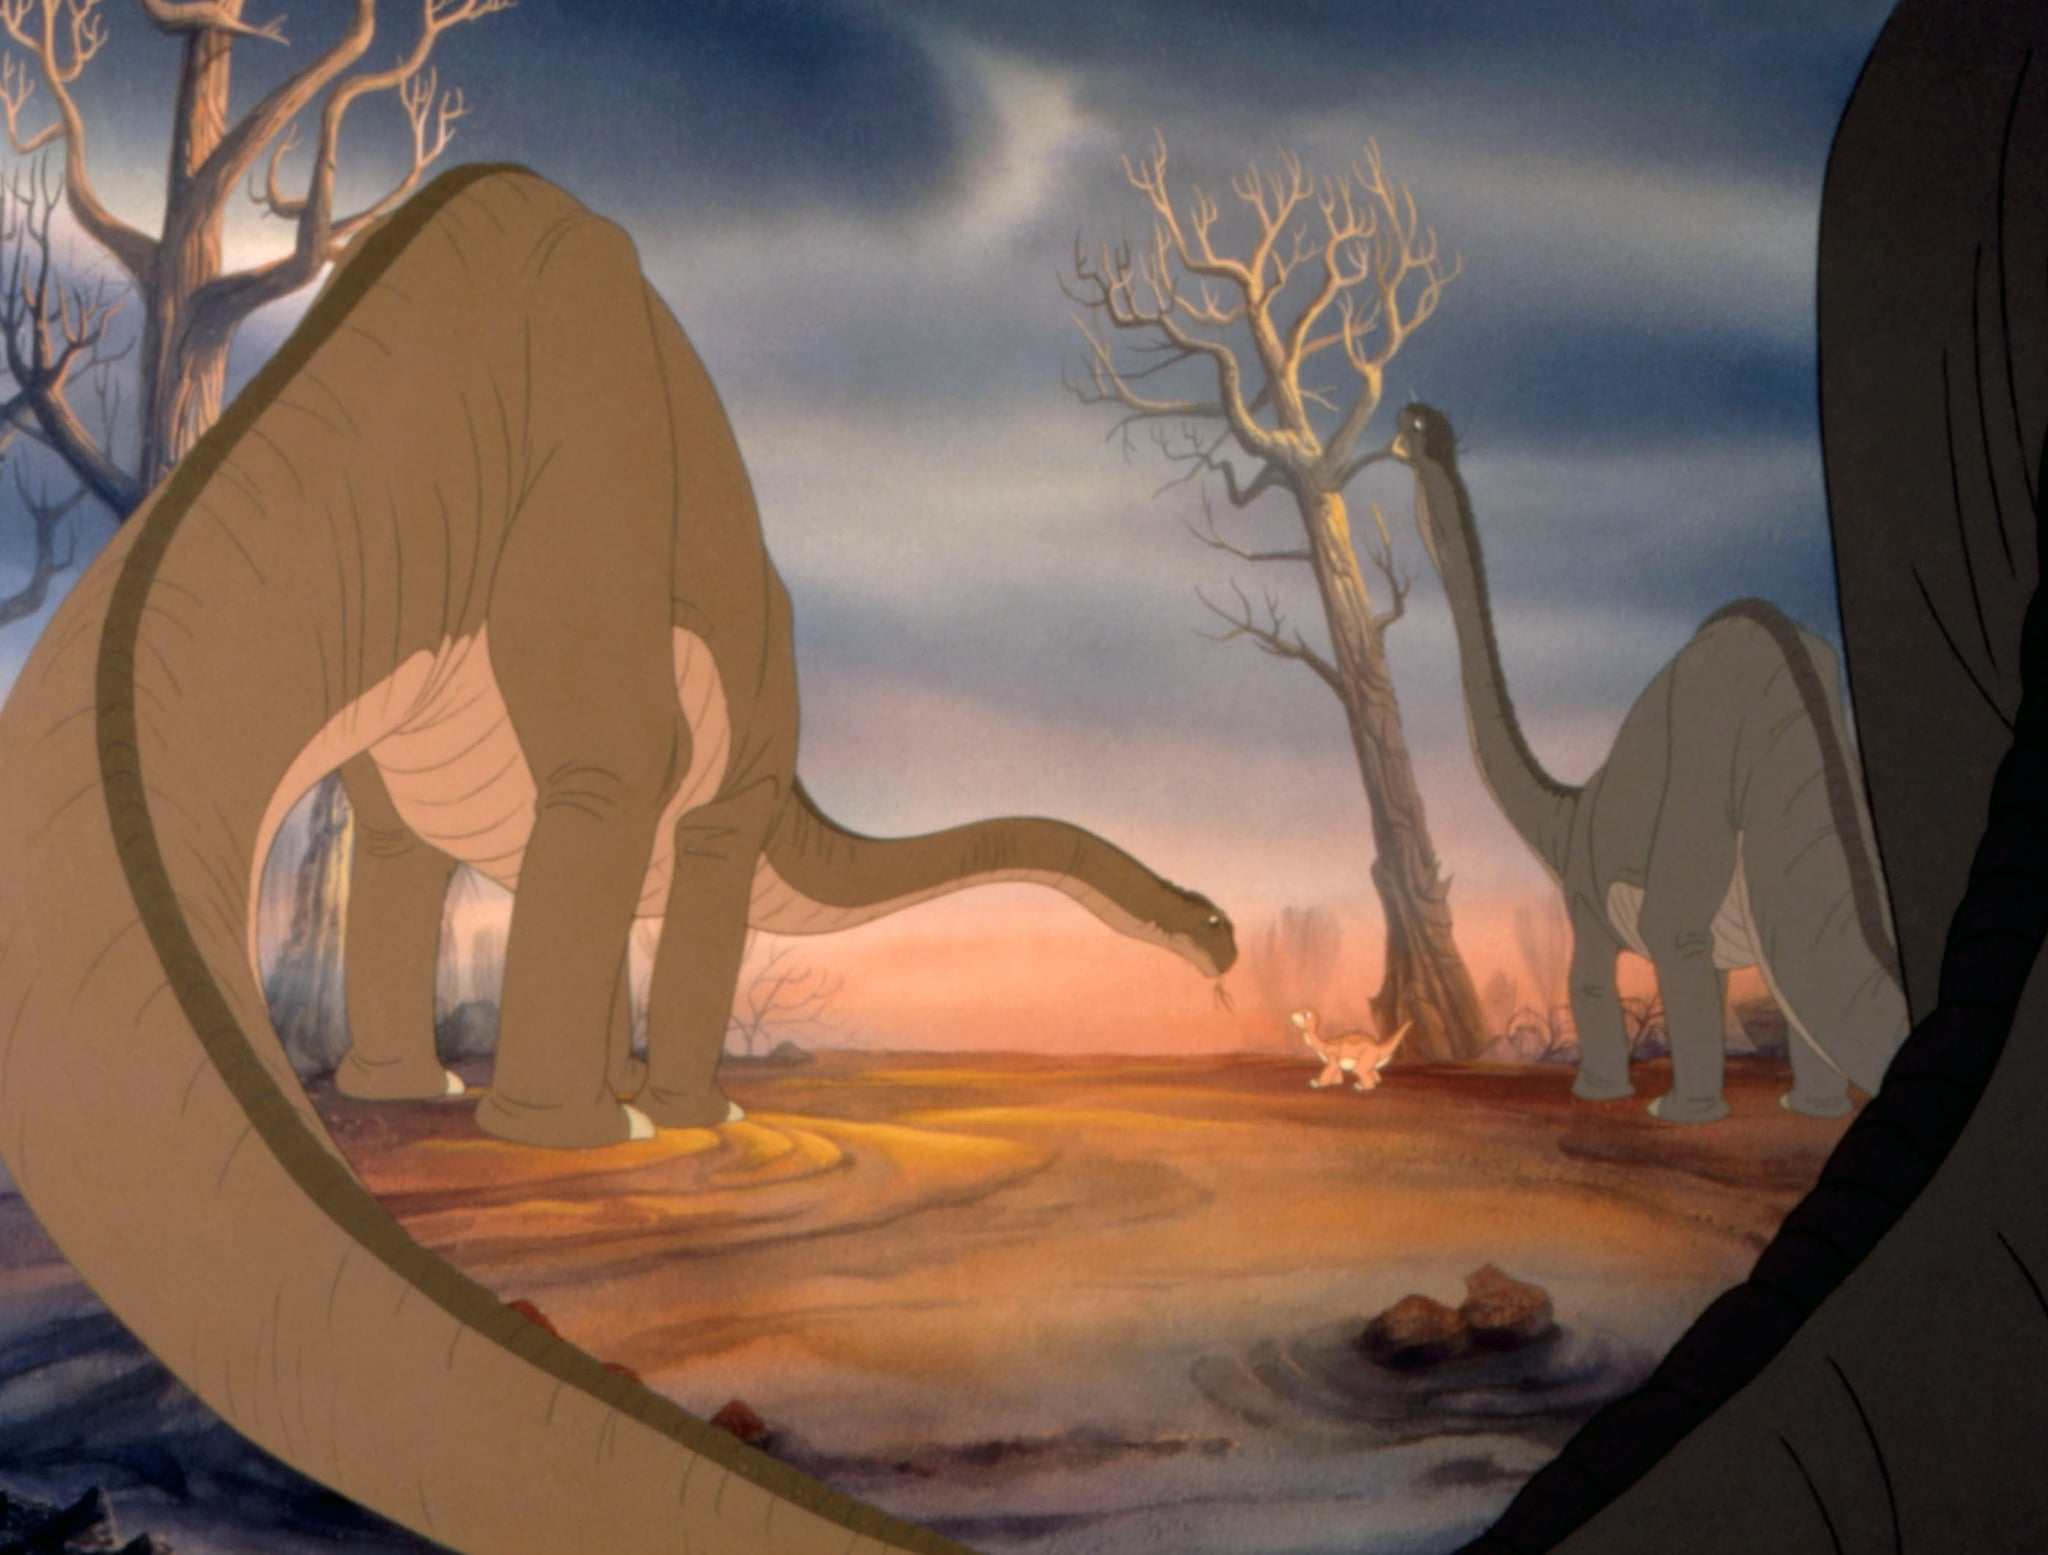 THE LAND BEFORE TIME, 1988, (c)Universal/courtesy Everett Collection